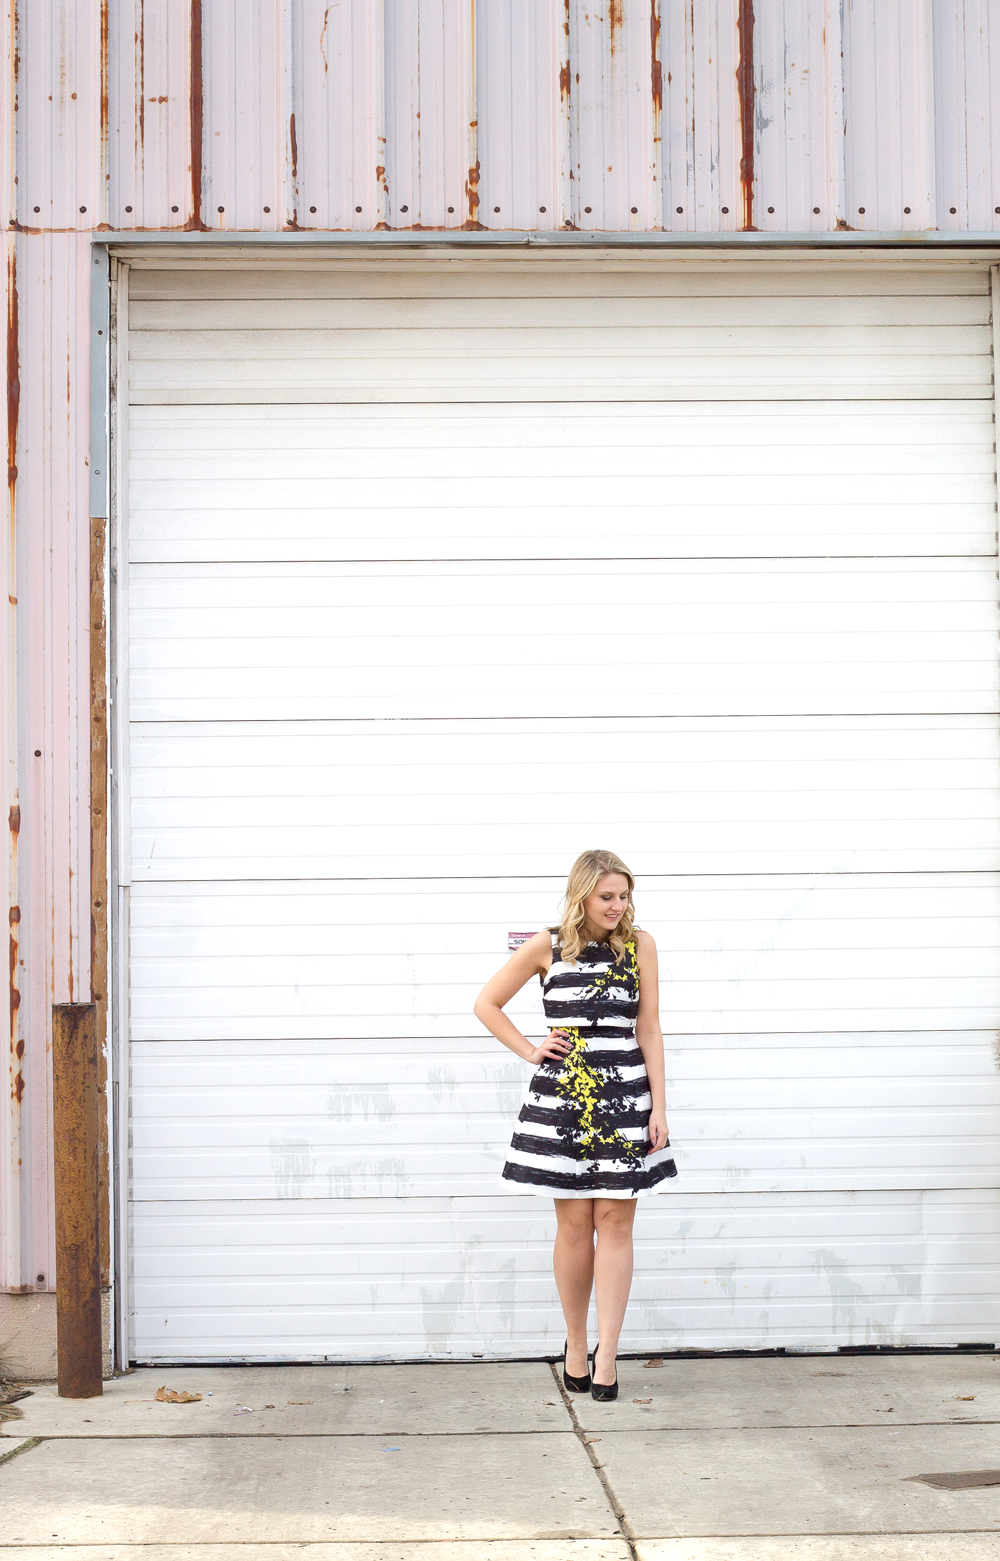 A Coast Stripes Dress balances out the urban city chicago background